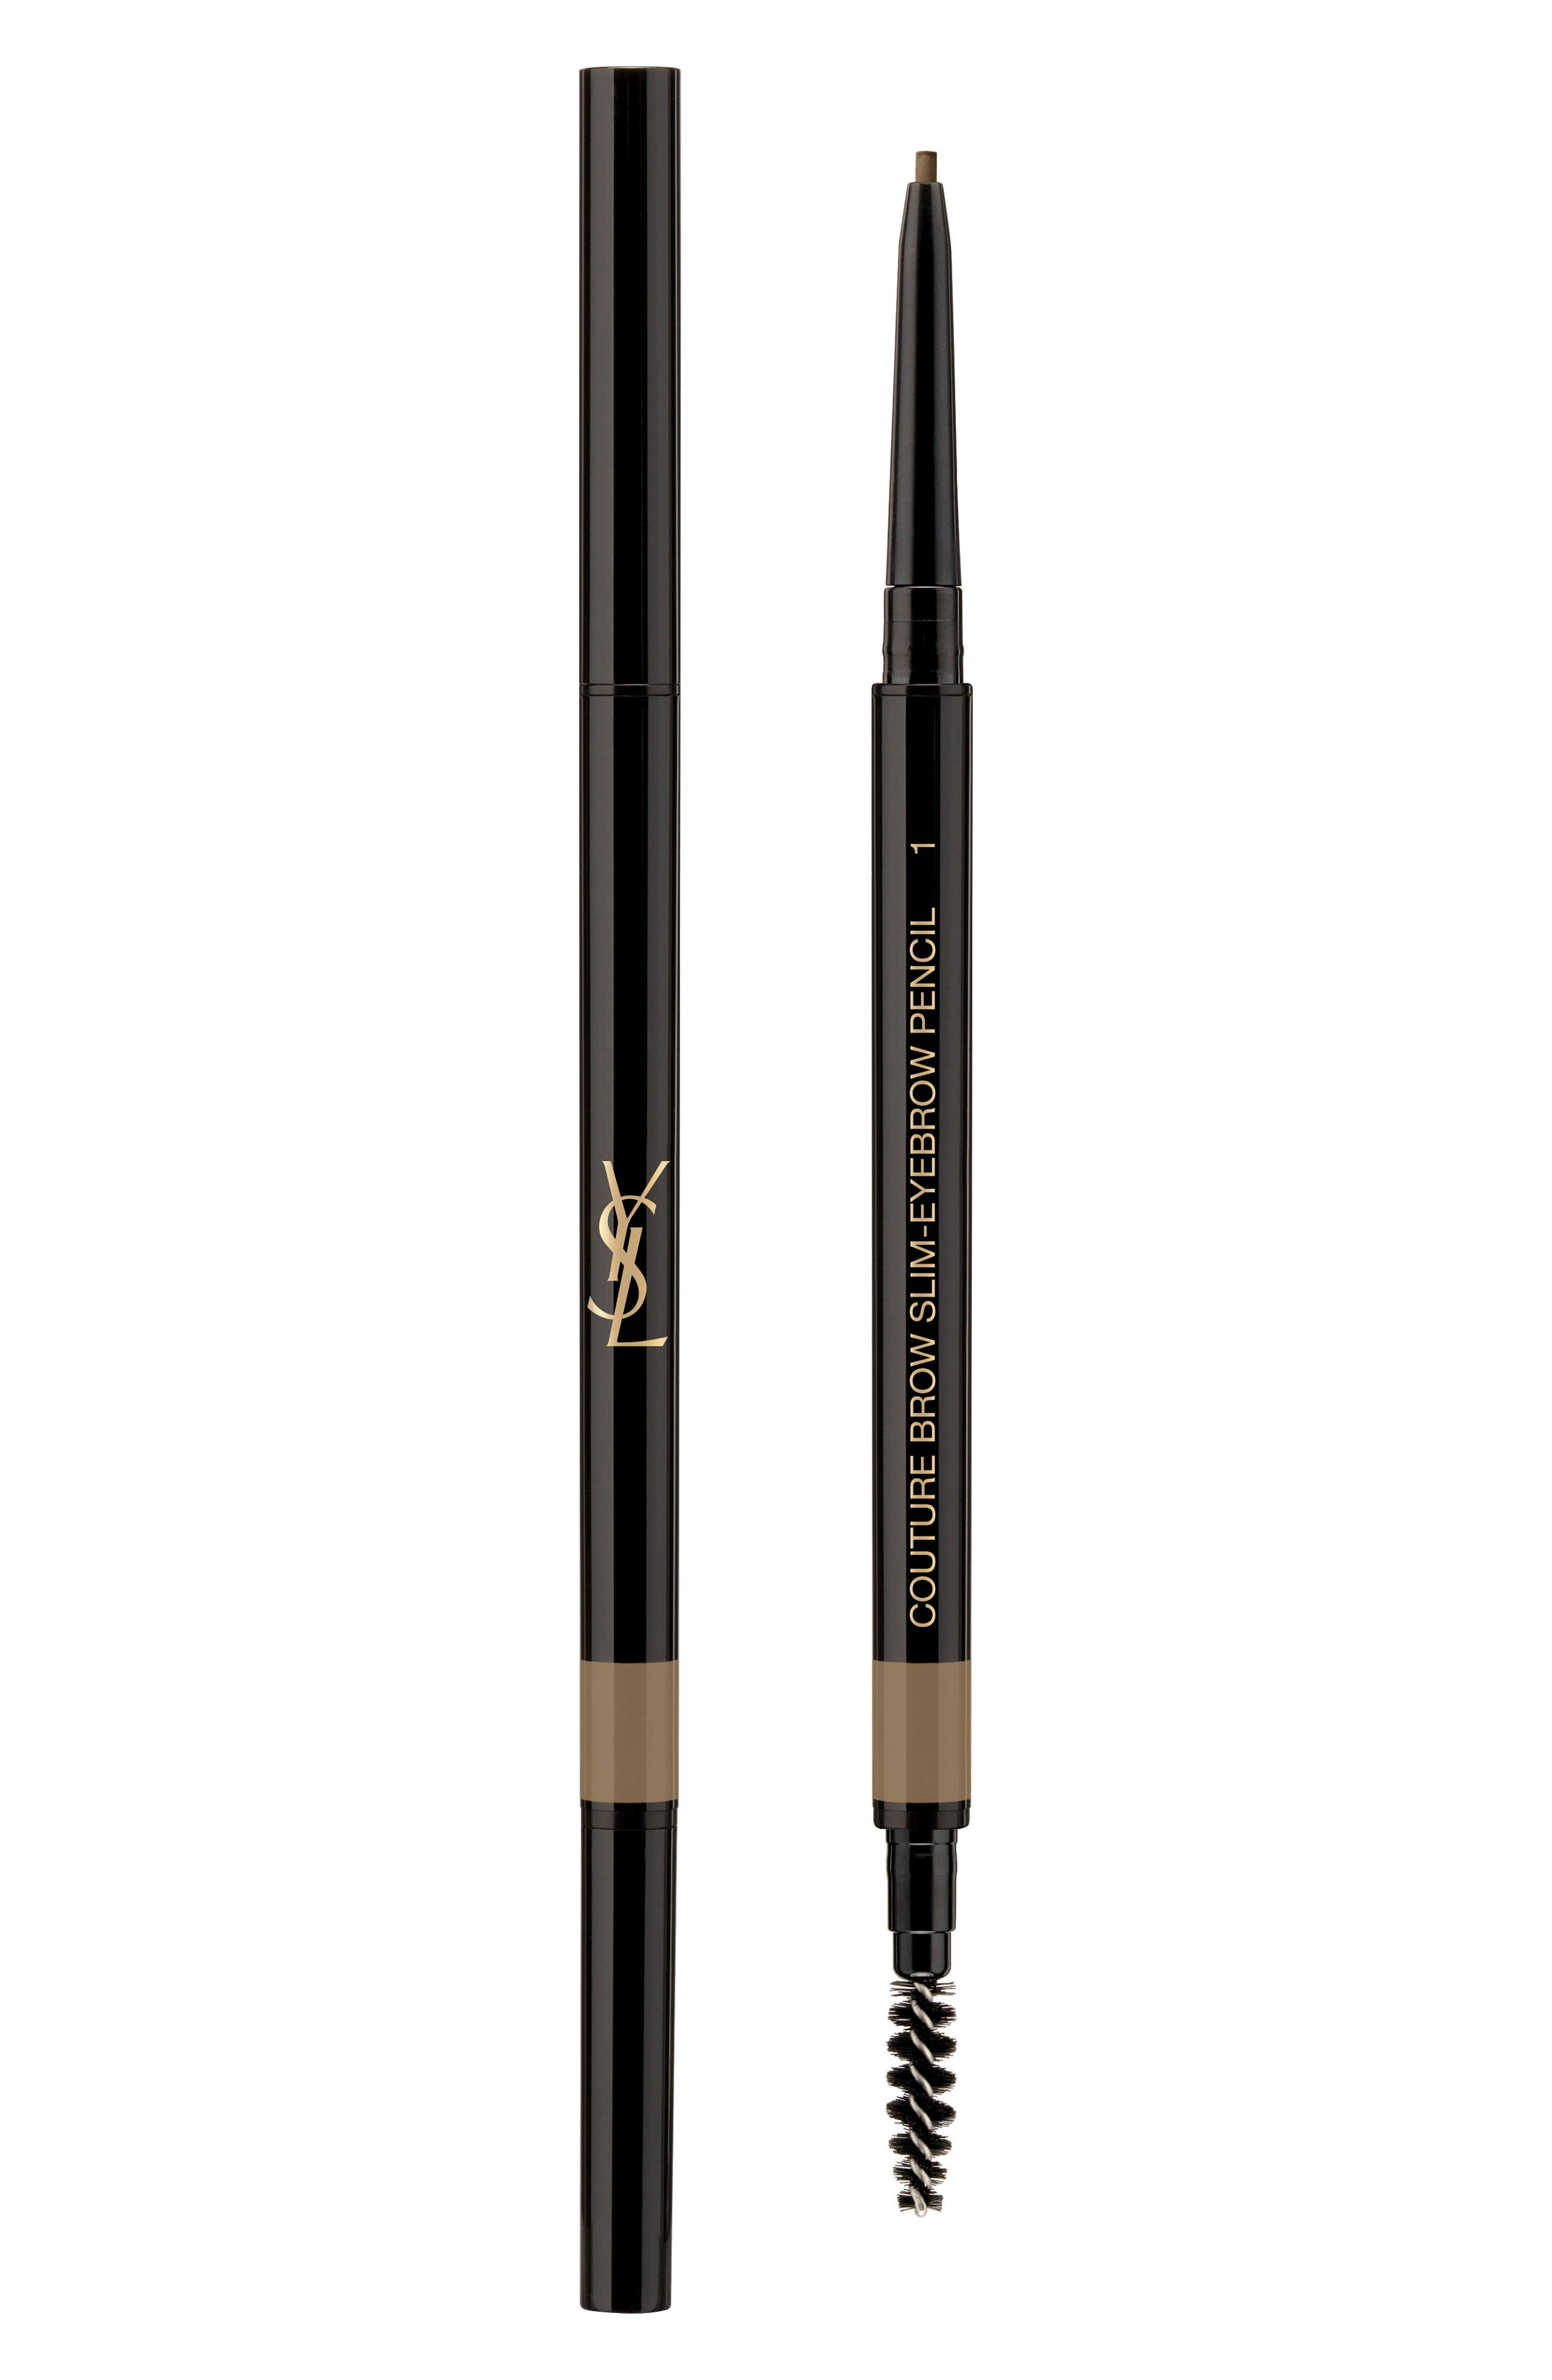 Yves Saint Laurent Couture Brow Slim Eyebrow Pencil -